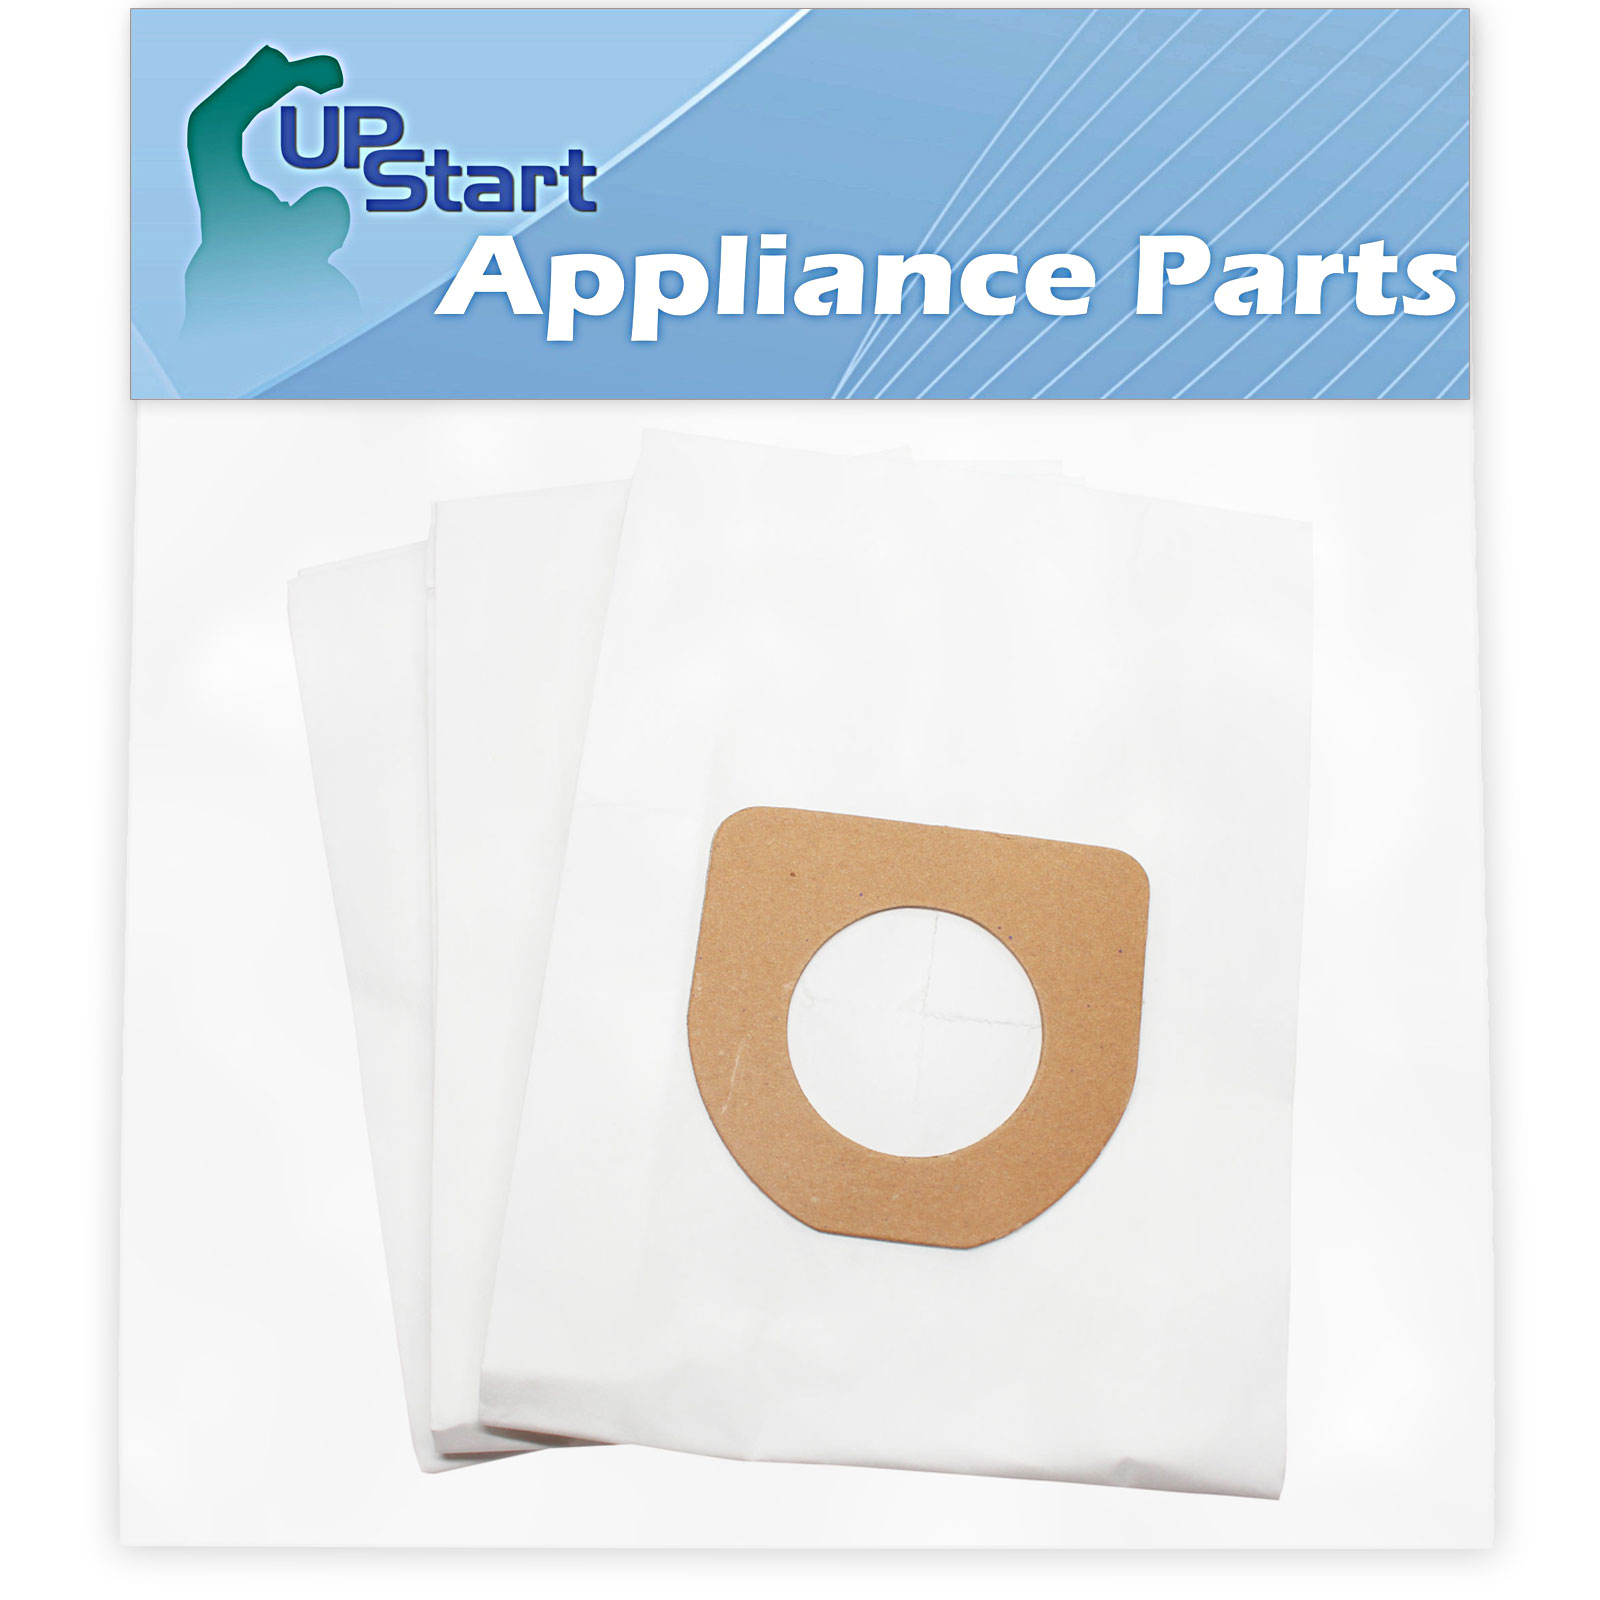 3 Replacement Hoover Caddy Vac Vacuum Bags - Compatible Hoover 4010100Z, Type Z HEPA Vacuum Bags - image 4 of 4